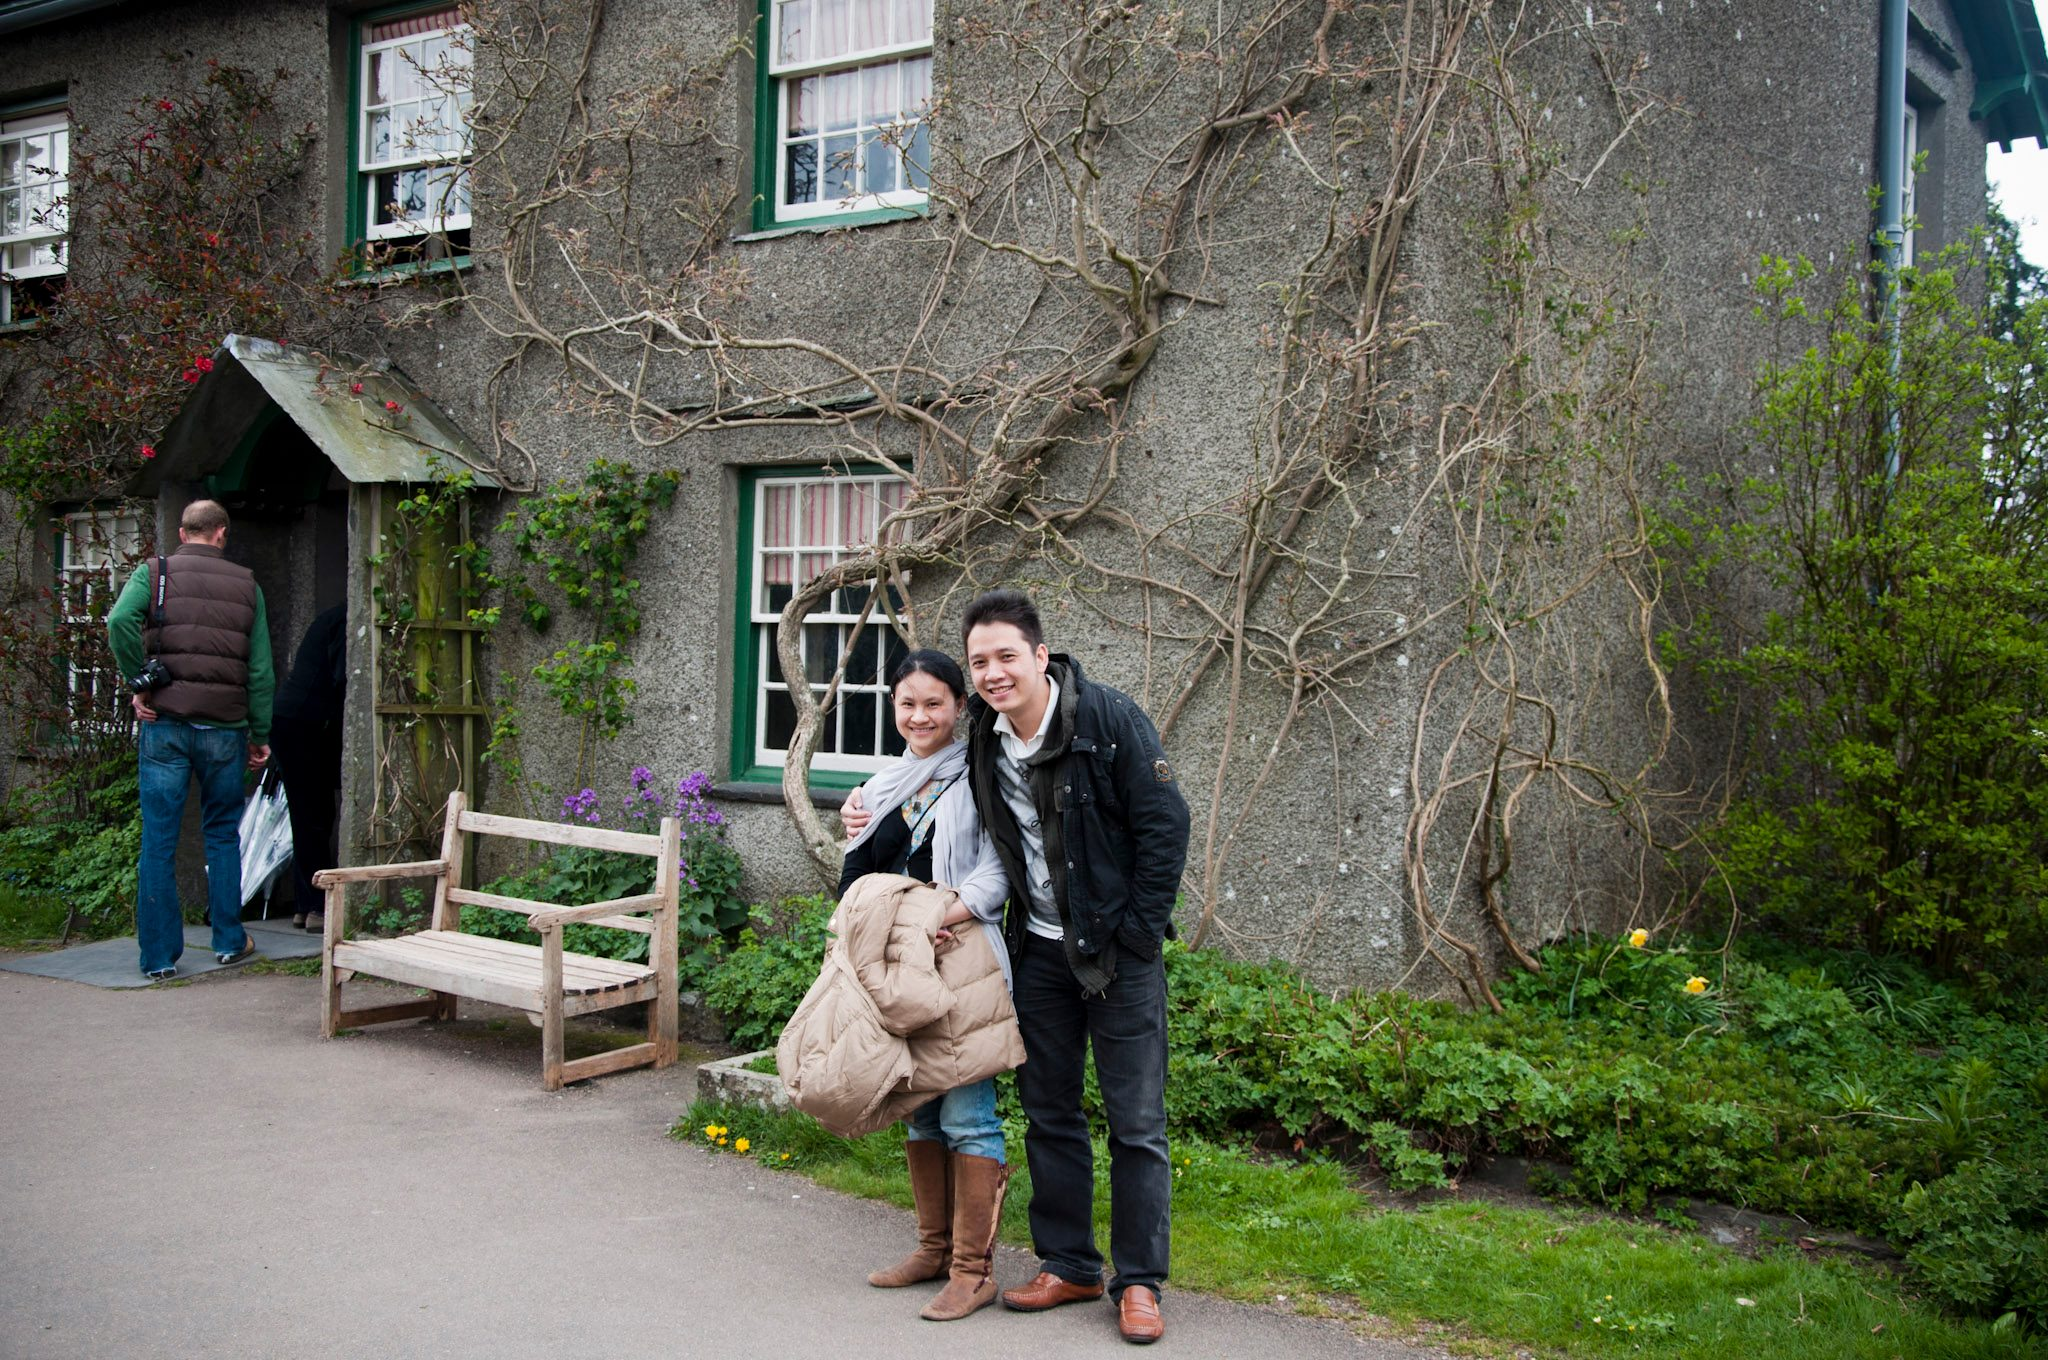 In front of Beatrix Potter's house